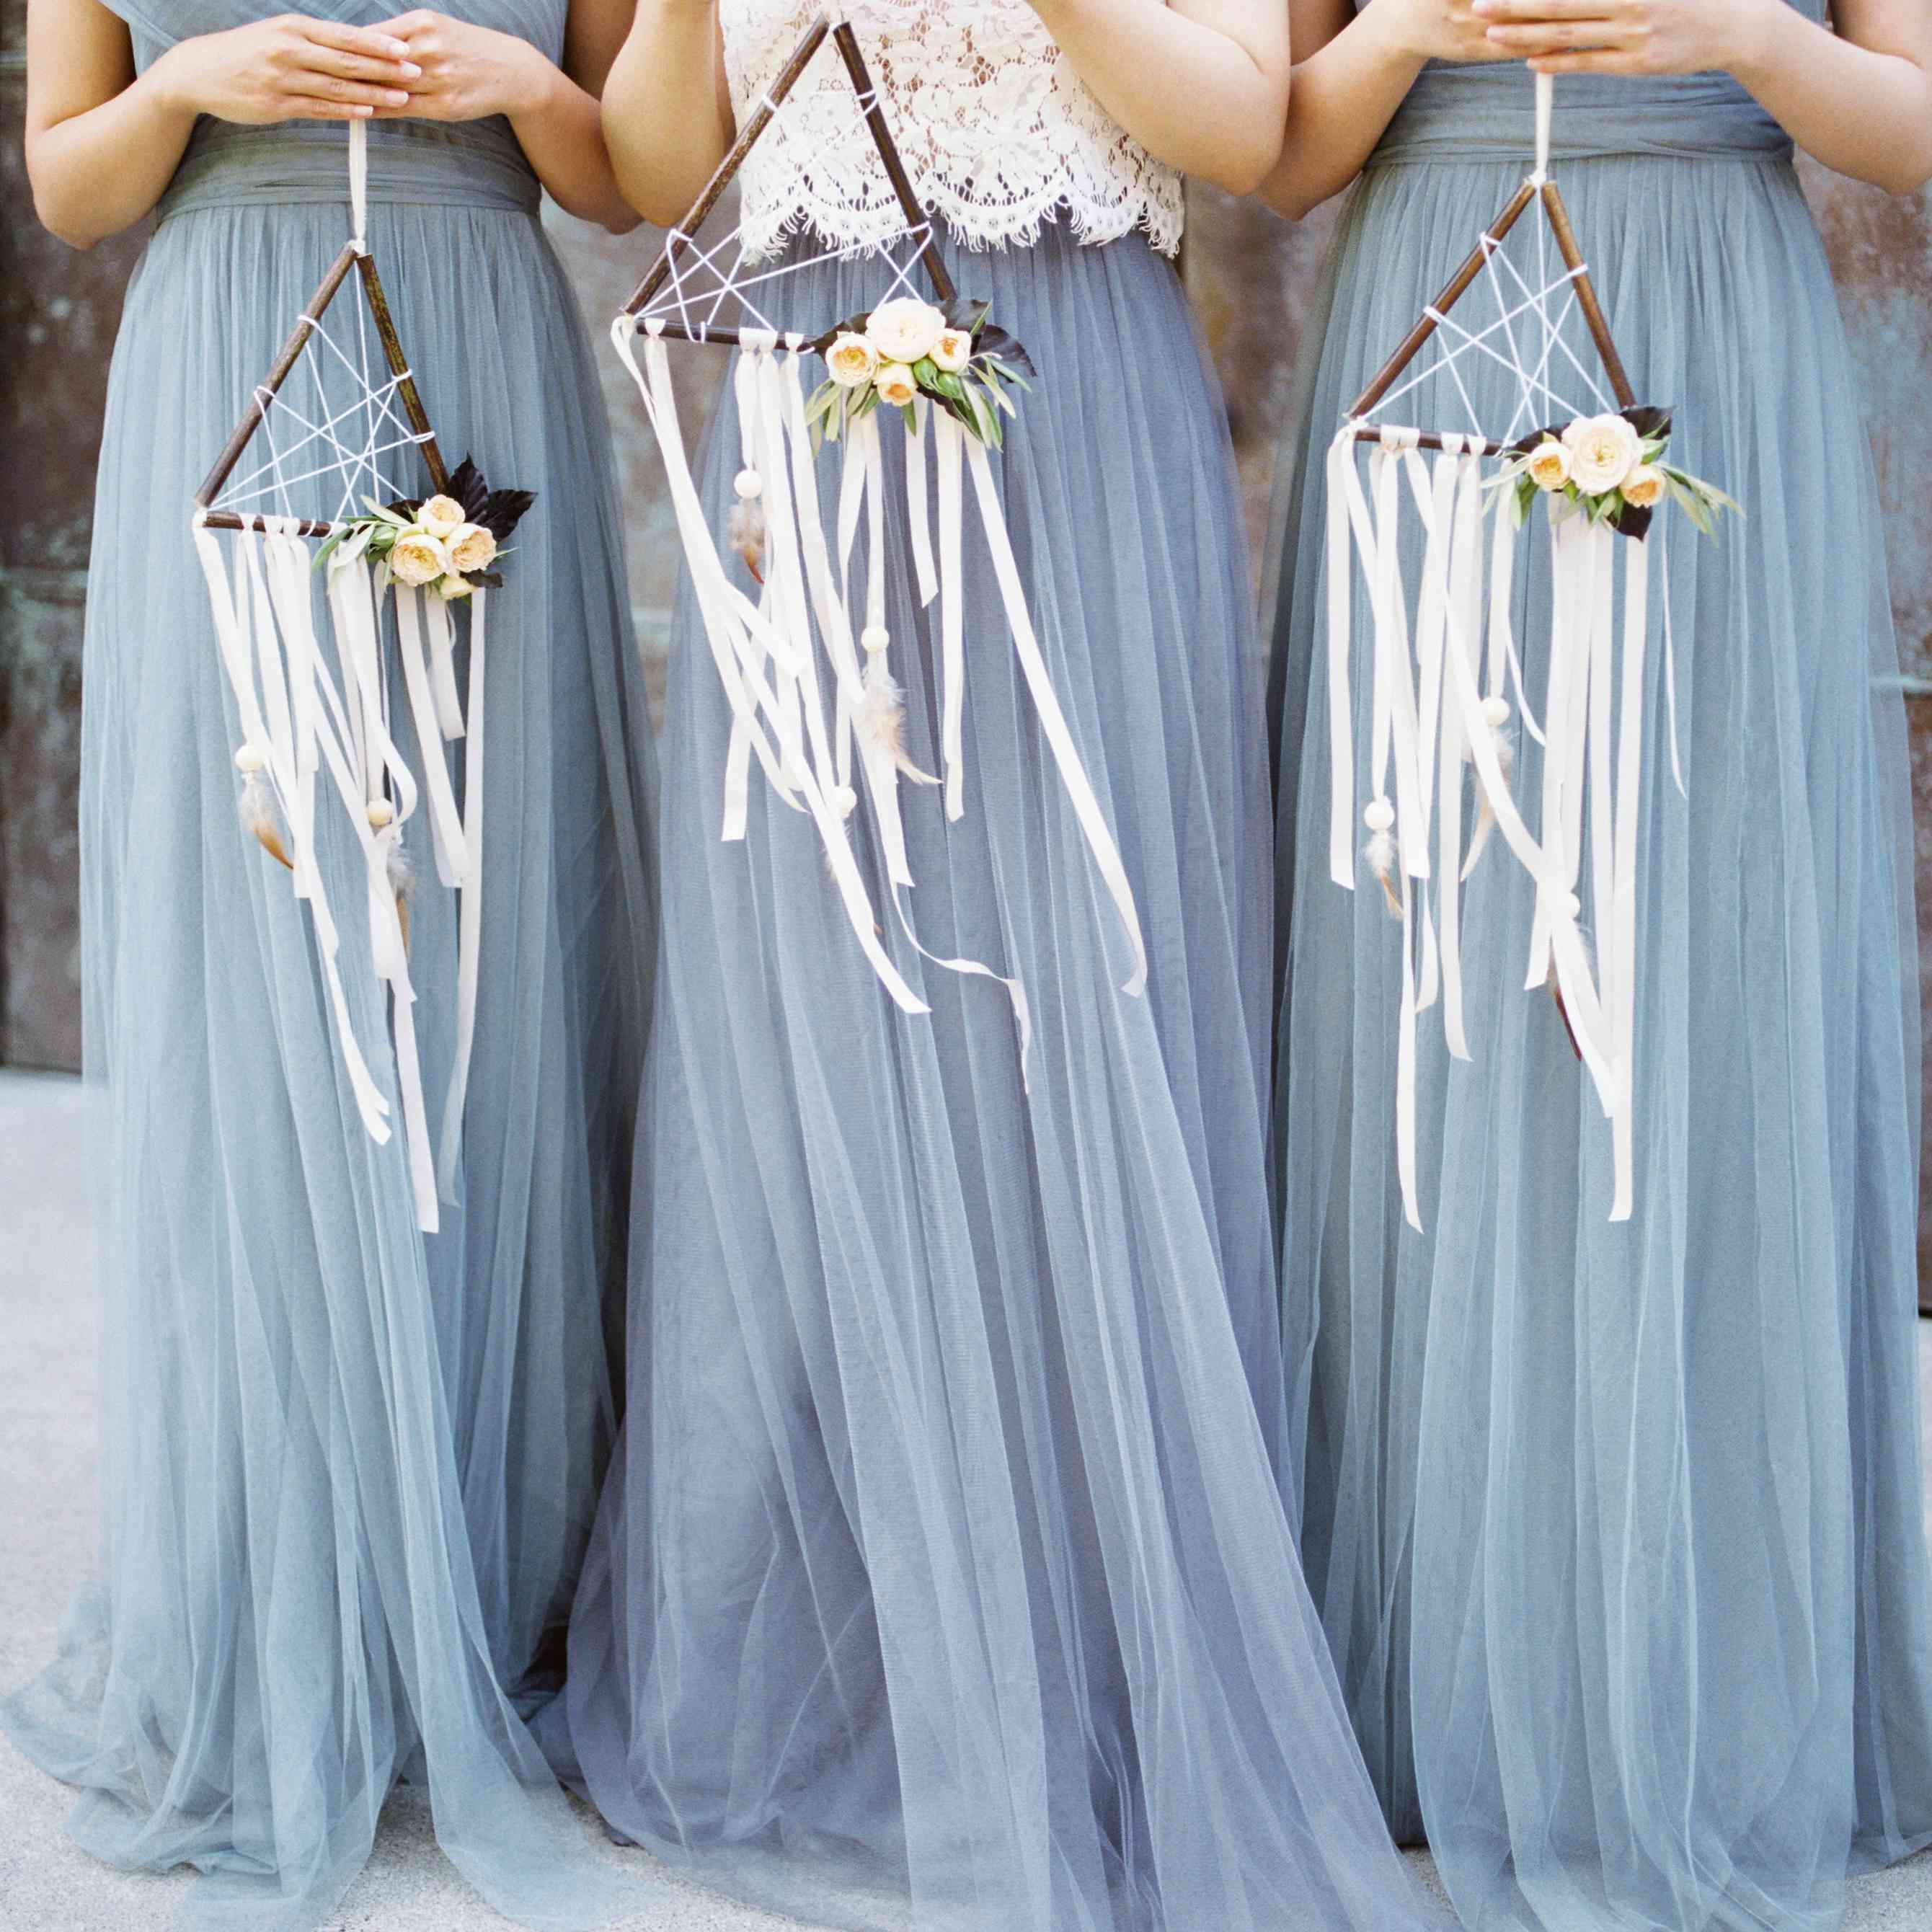 6 Non-Traditional Bouquet Ideas For Your Bridal Party